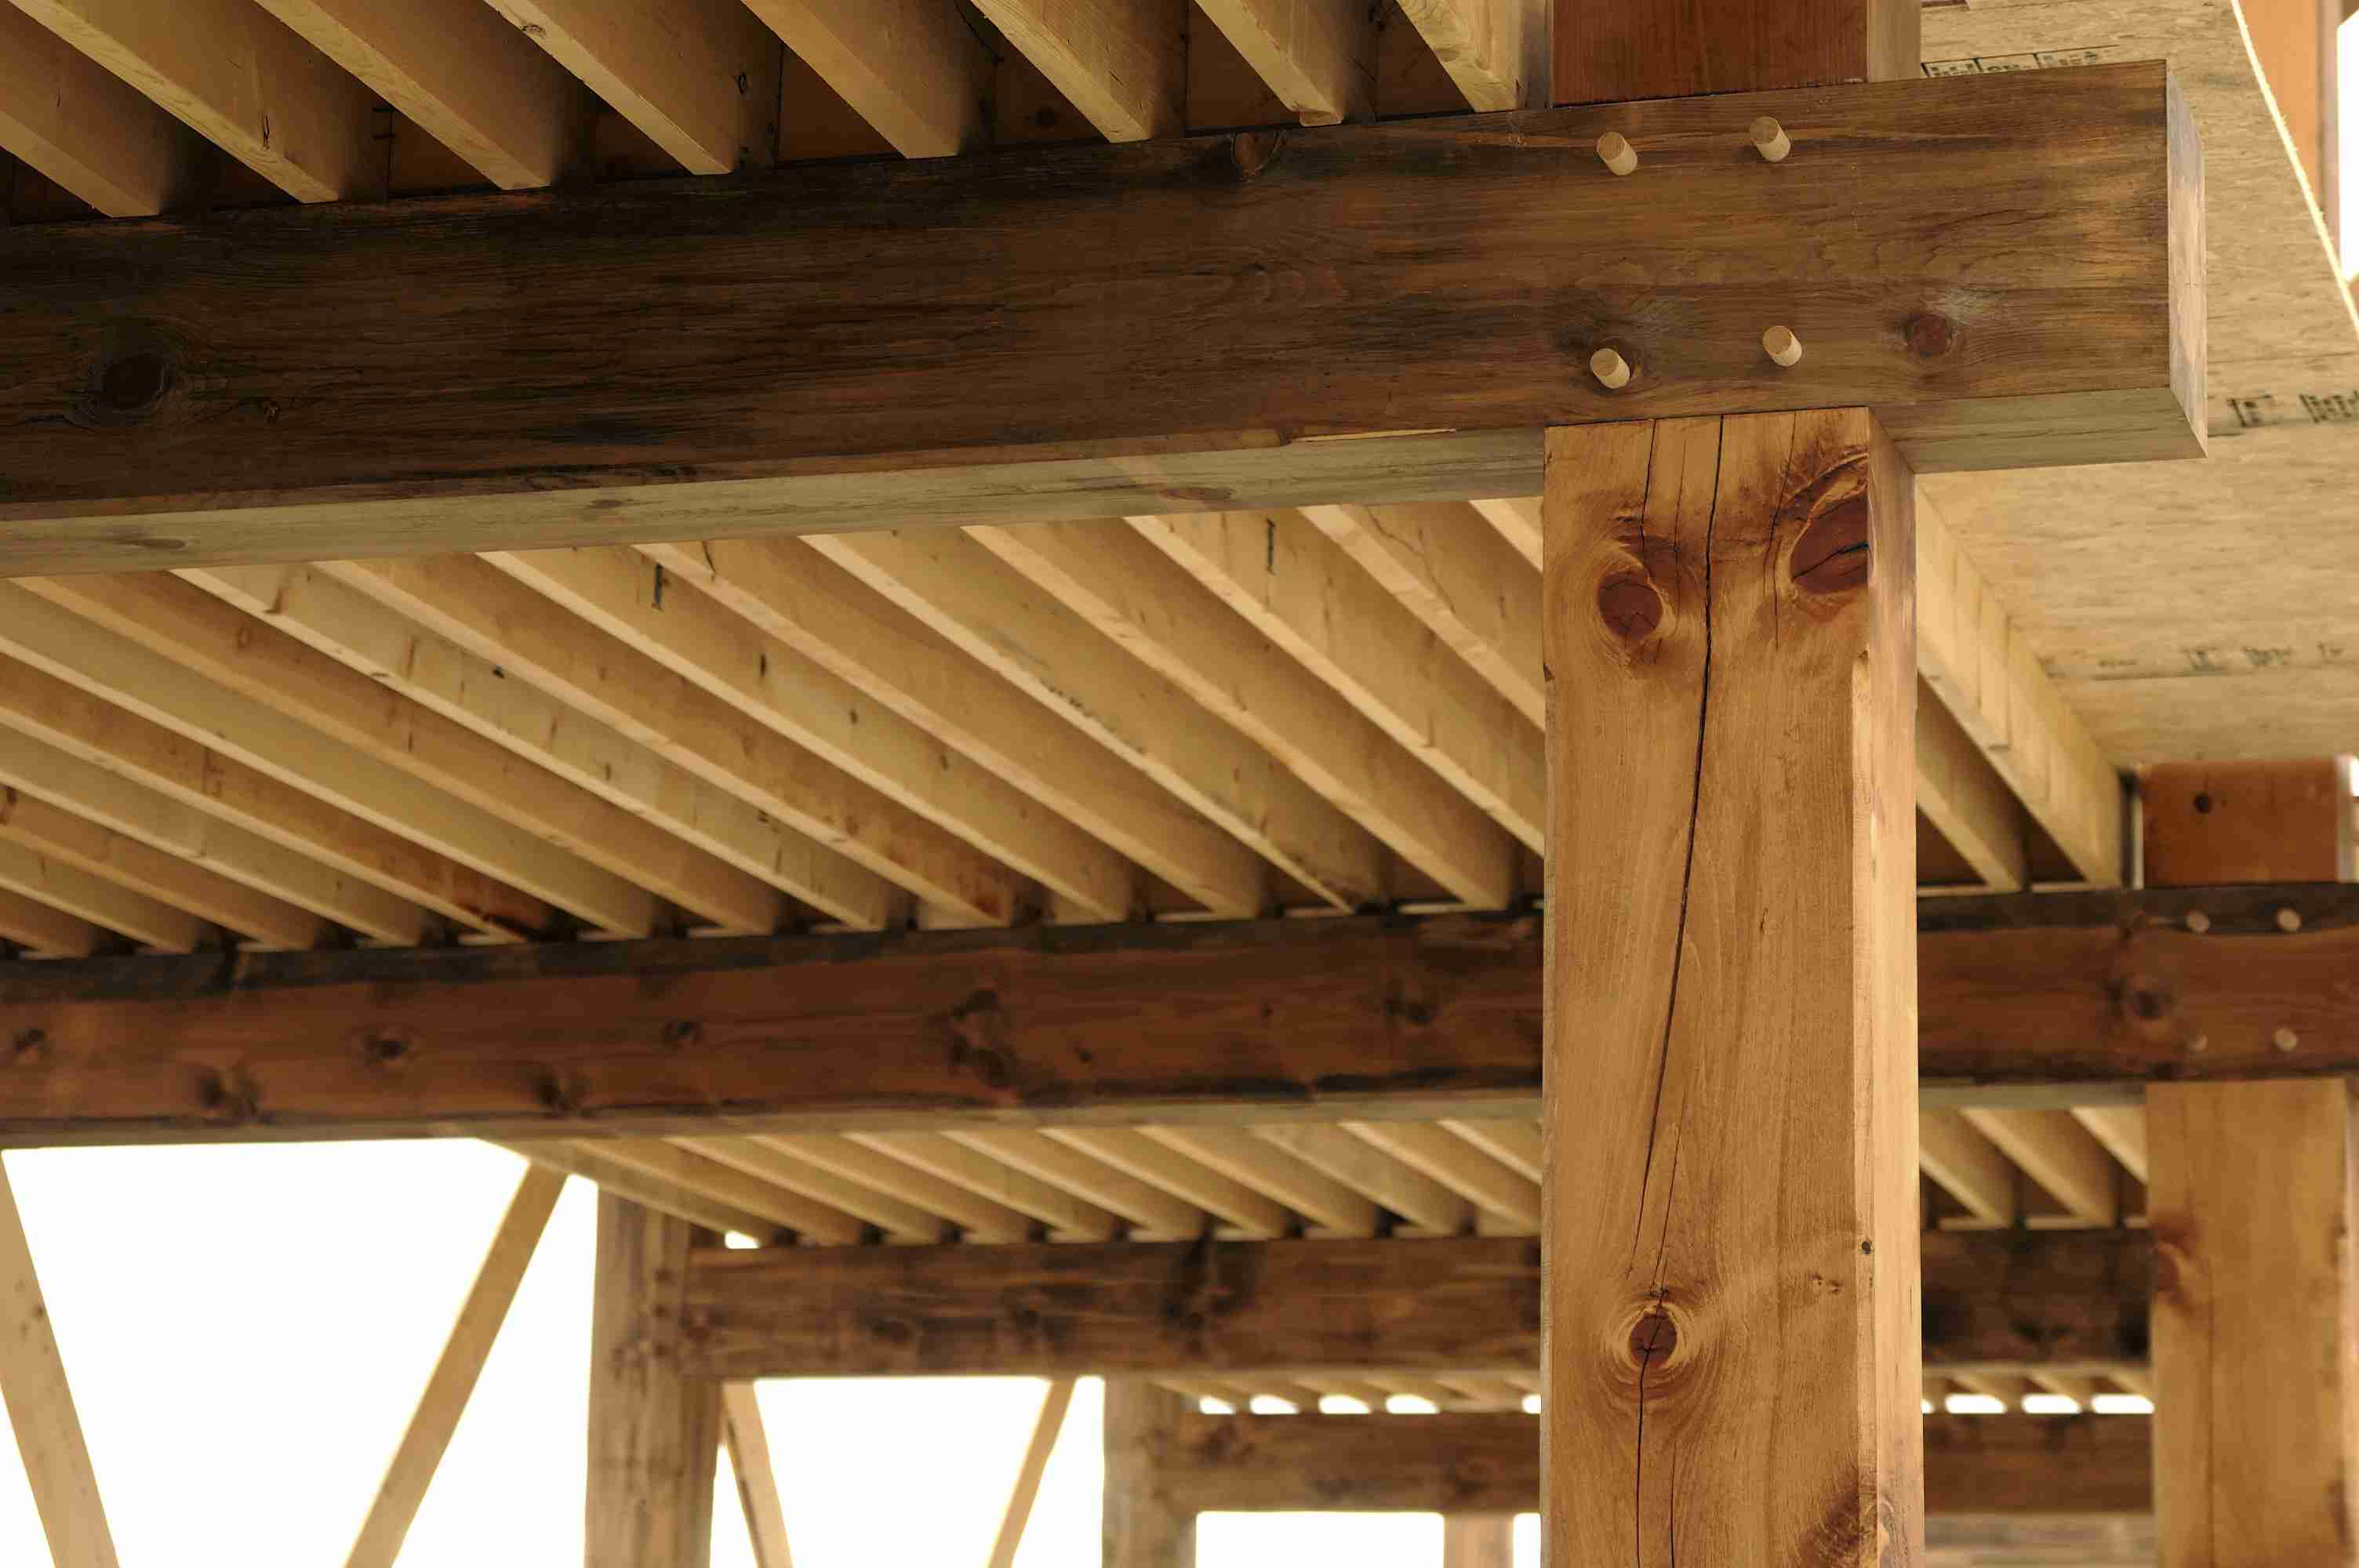 detail of timber-framed structure with large wooden beams held together with wooden pegs